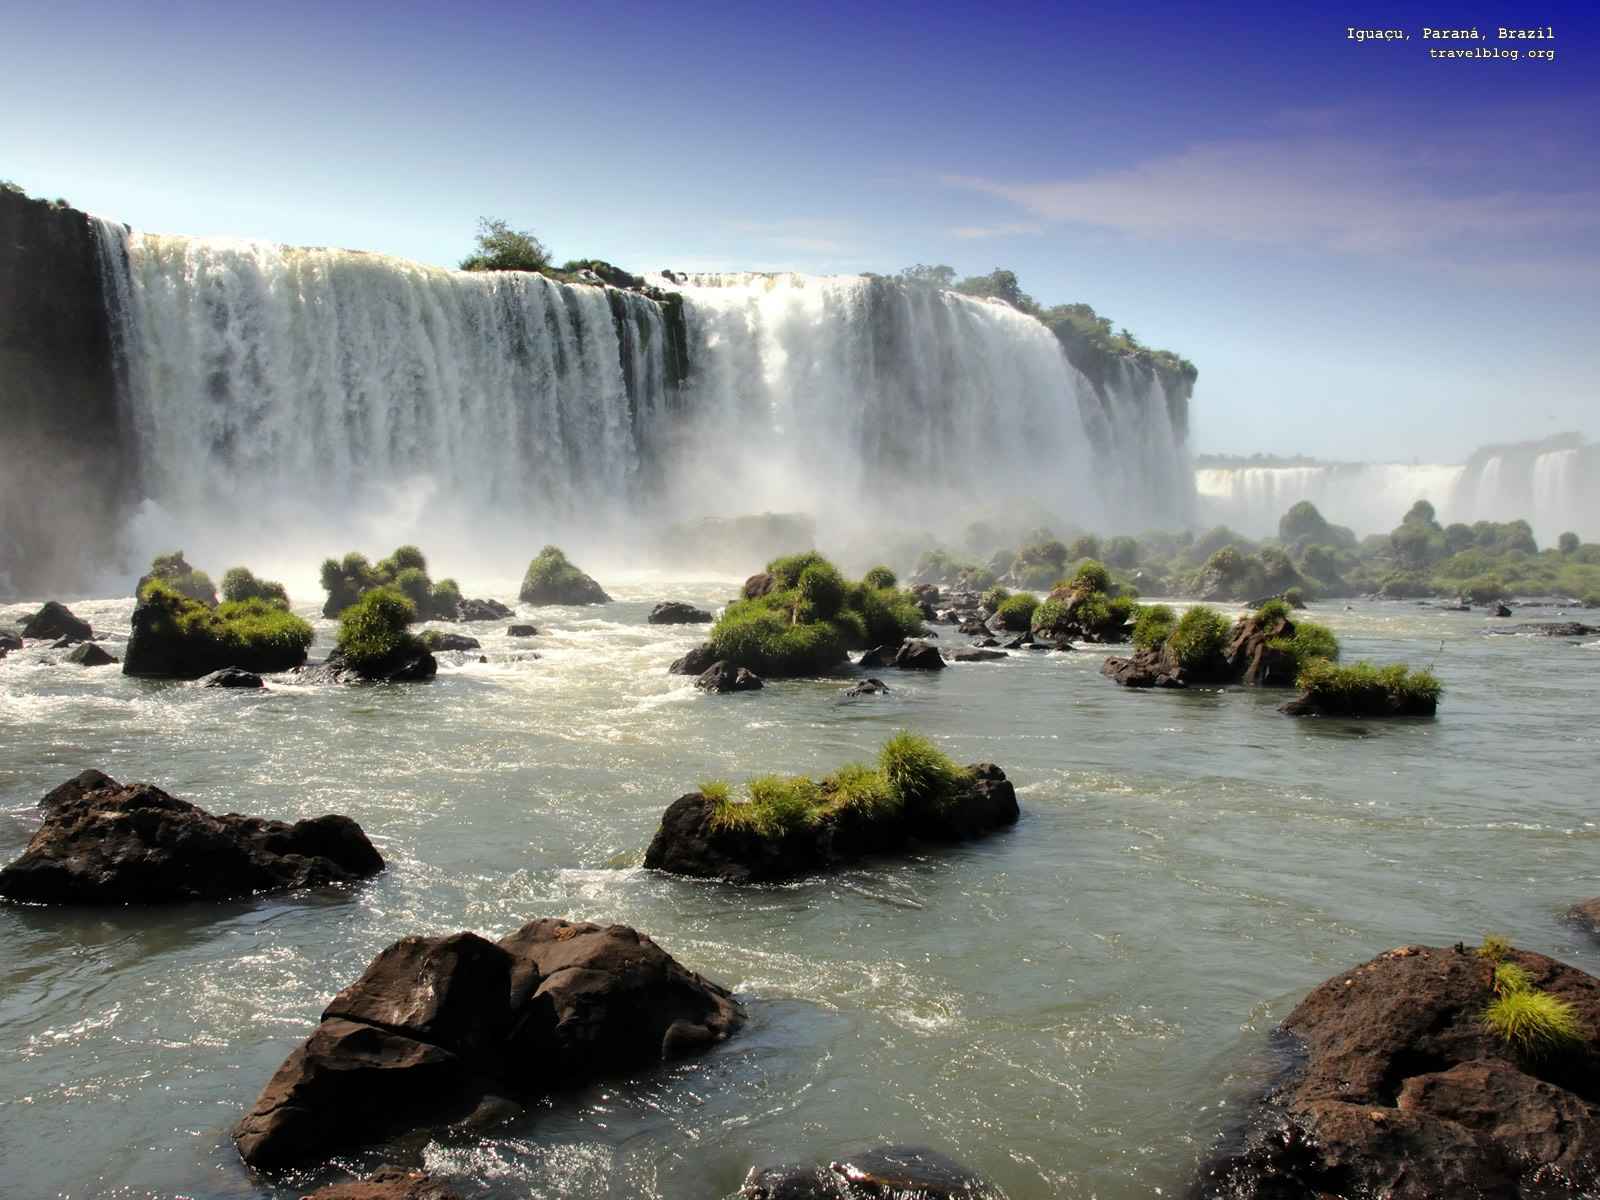 http://3.bp.blogspot.com/_NEUNoIbW0wo/TUvbTGLIAlI/AAAAAAAAAQY/VVi6oYh6cJM/s1600/waterfall_desktop_background-1600x1200.jpg